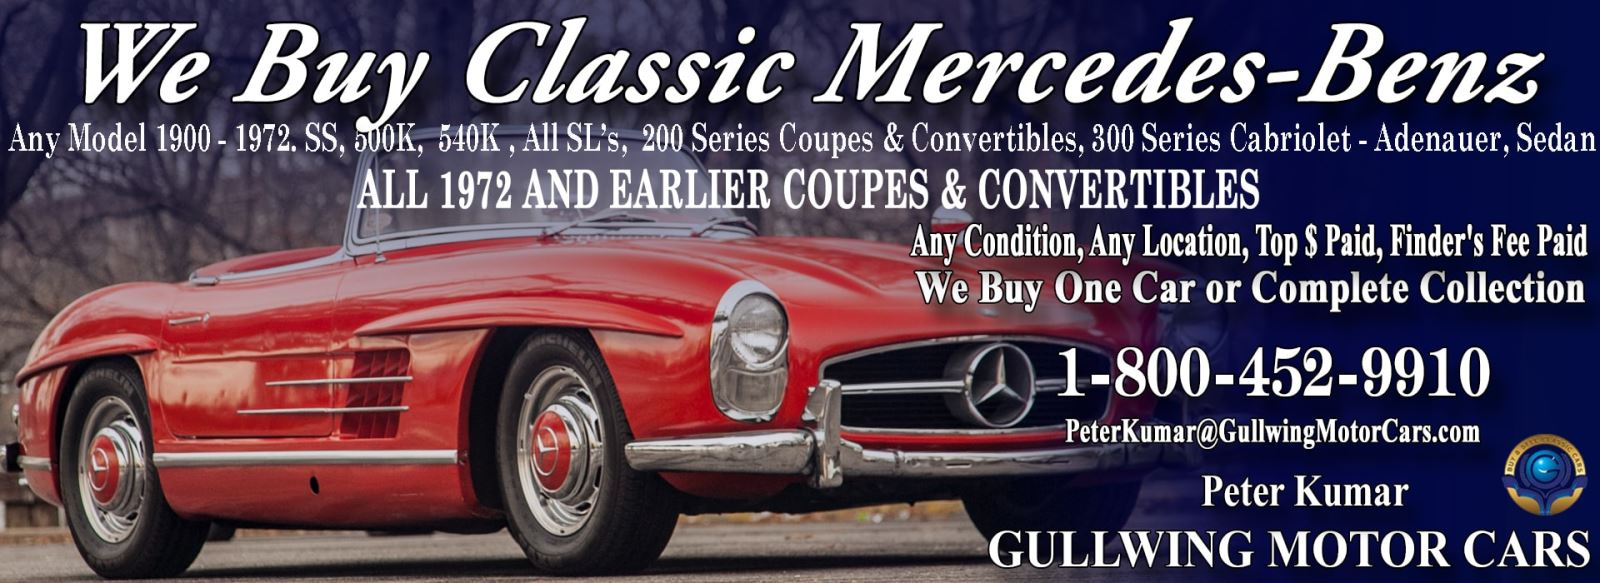 Classic Mercedes 300SE for sale, we buy vintage Mercedes 300 SE. Call Peter Kumar. Gullwing Motor